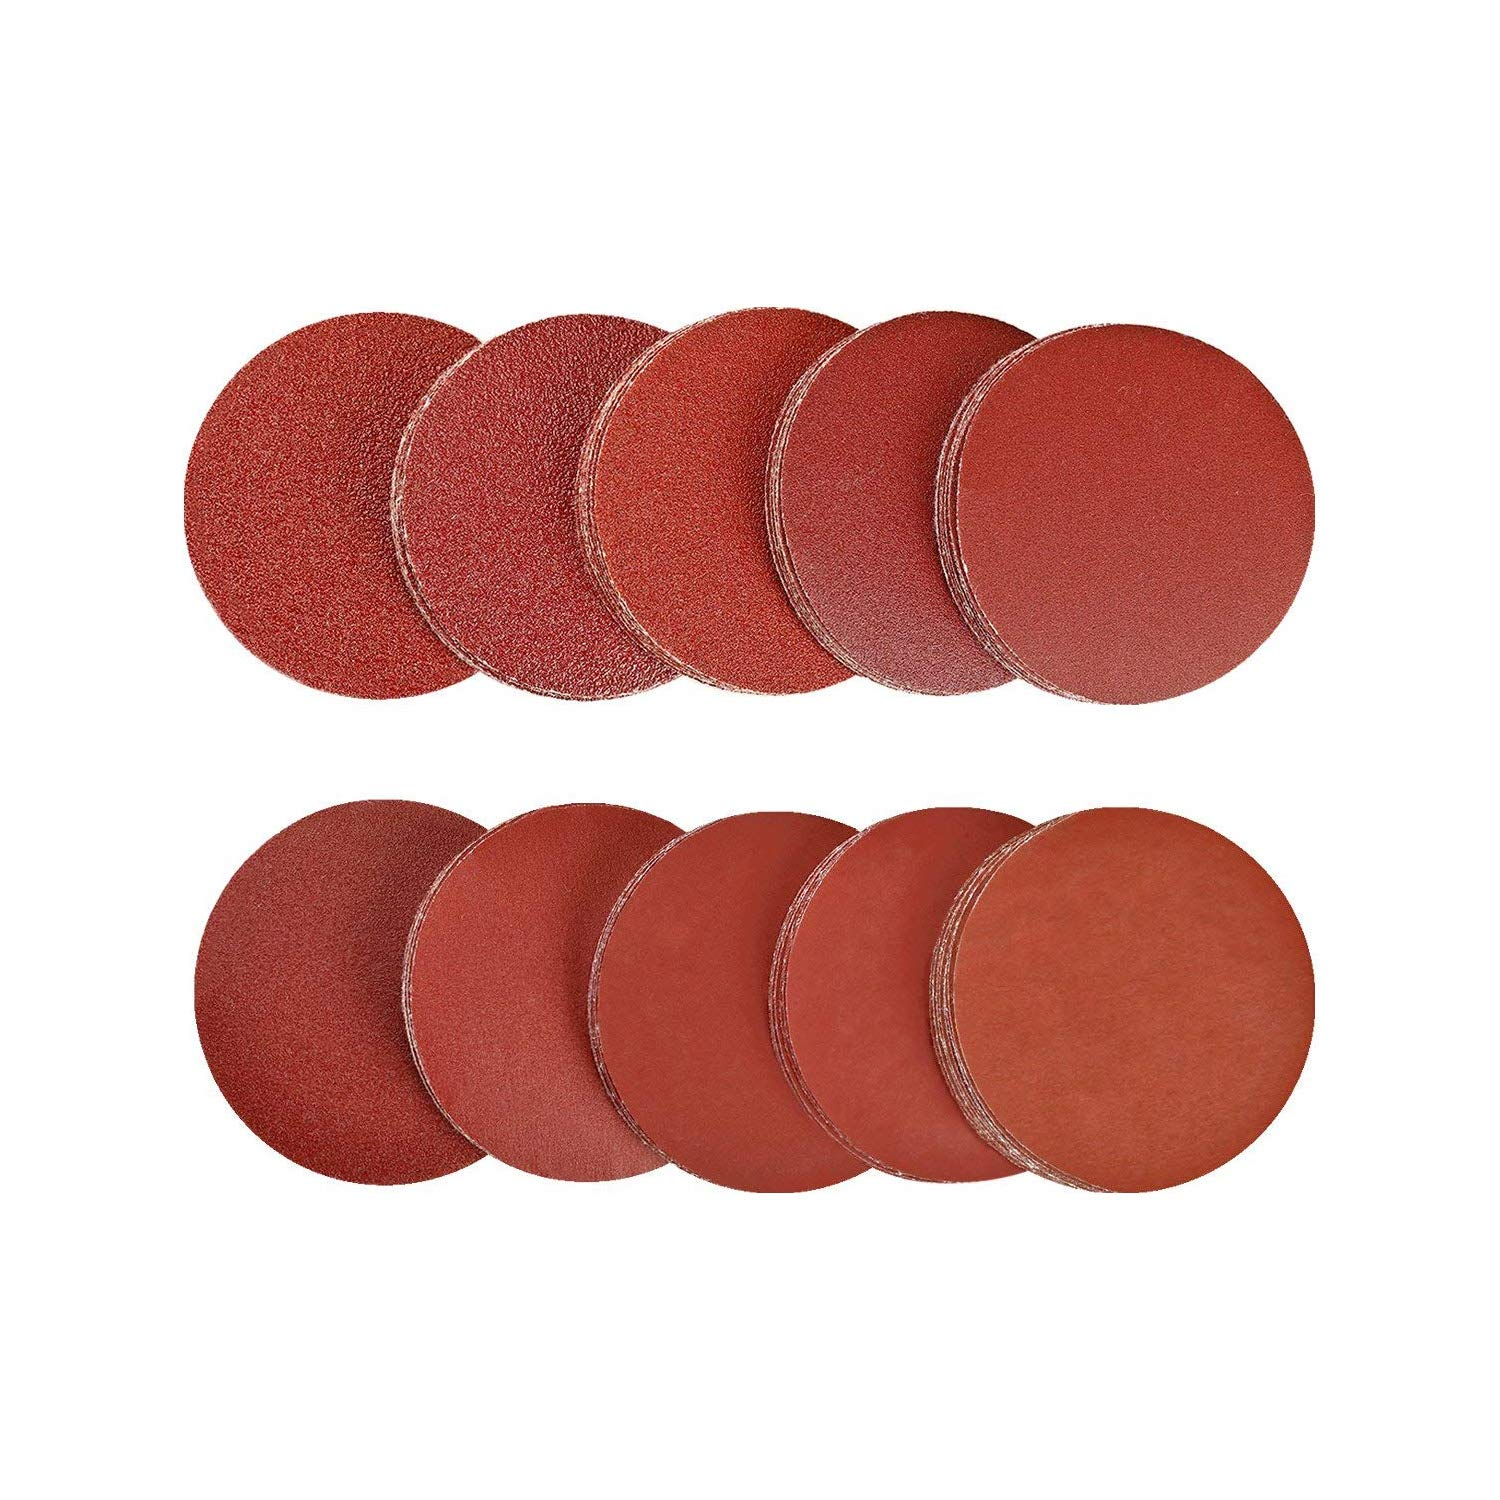 SPTA 200pcs 2 inch Sanding Discs Pad Kit for Drill Grinder Rotary Tools NO-Hole Aluminum Oxide Sanding Discs with Mix grit 40# - 2000#